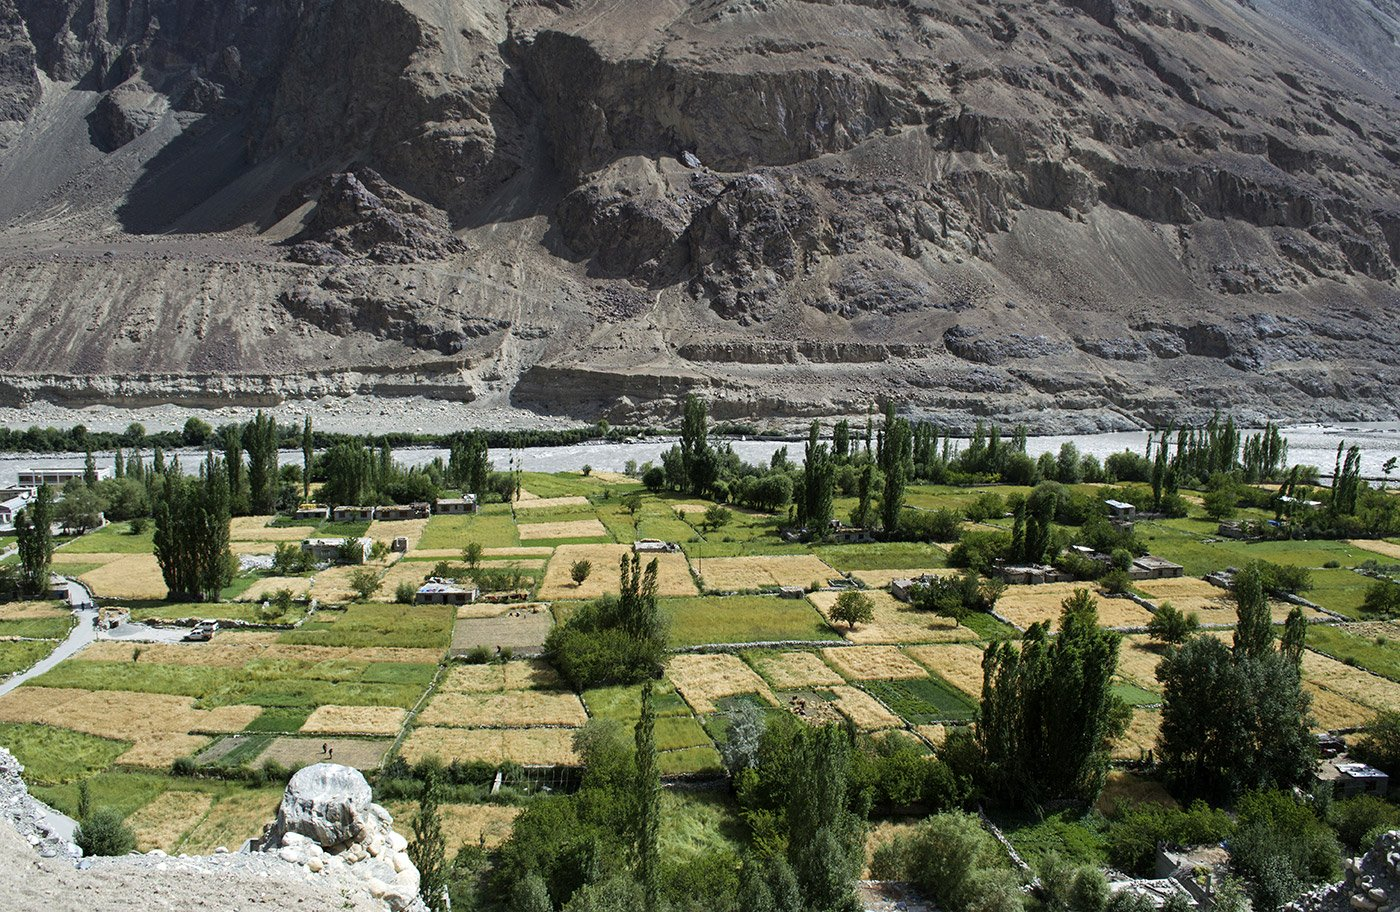 Turtuk village, in the high-altitude Nubra Valley near the LoC